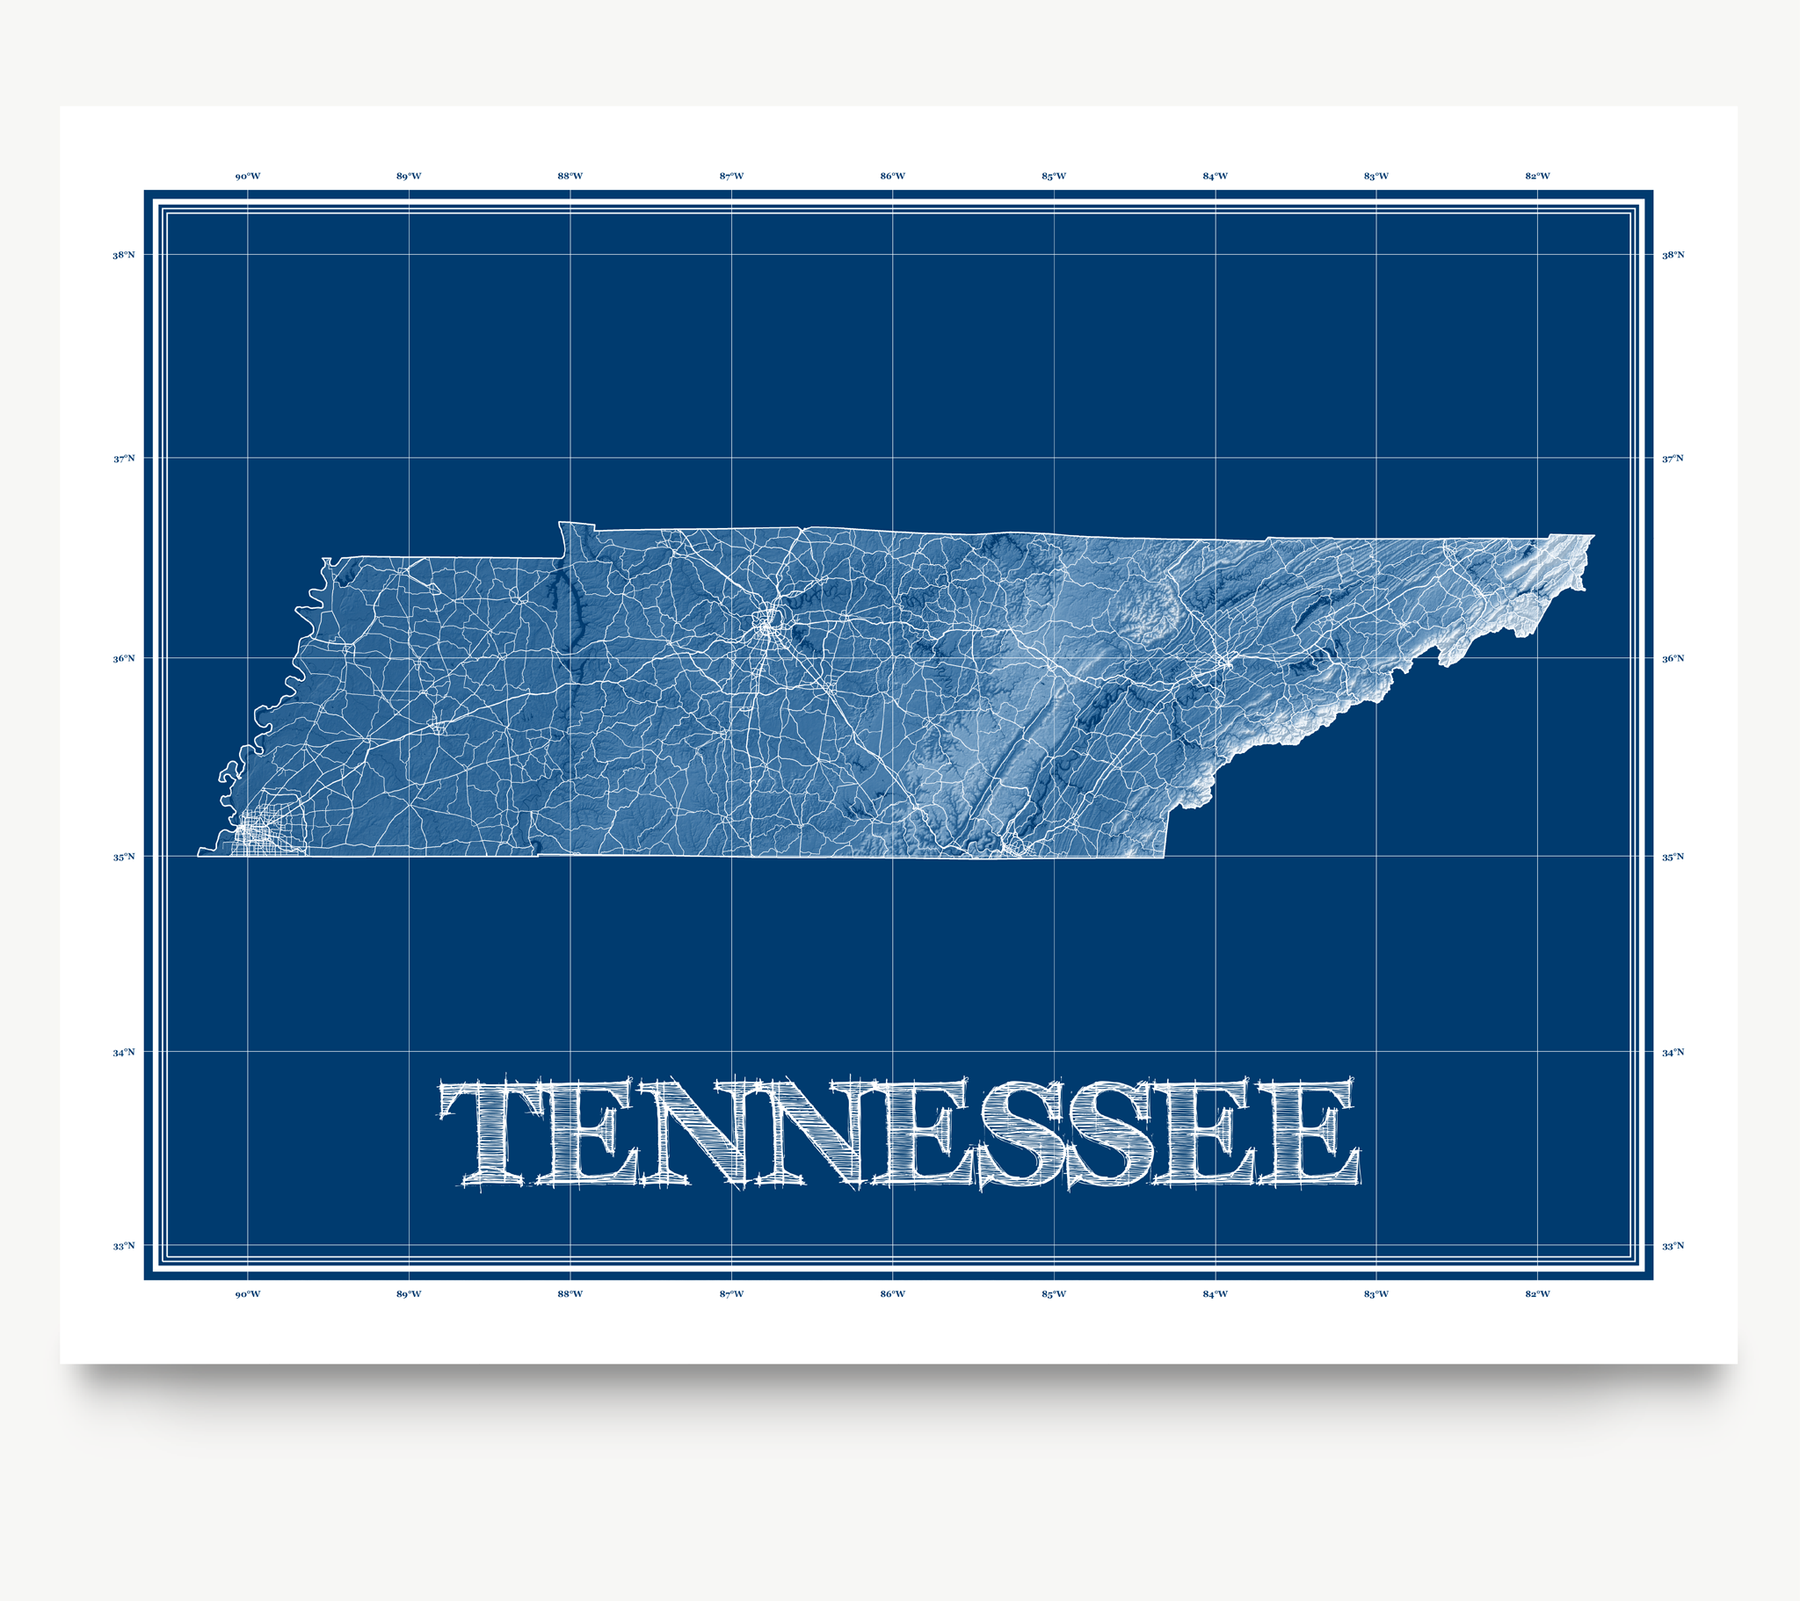 Tennessee state blueprint map art print designed by Maps As Art.